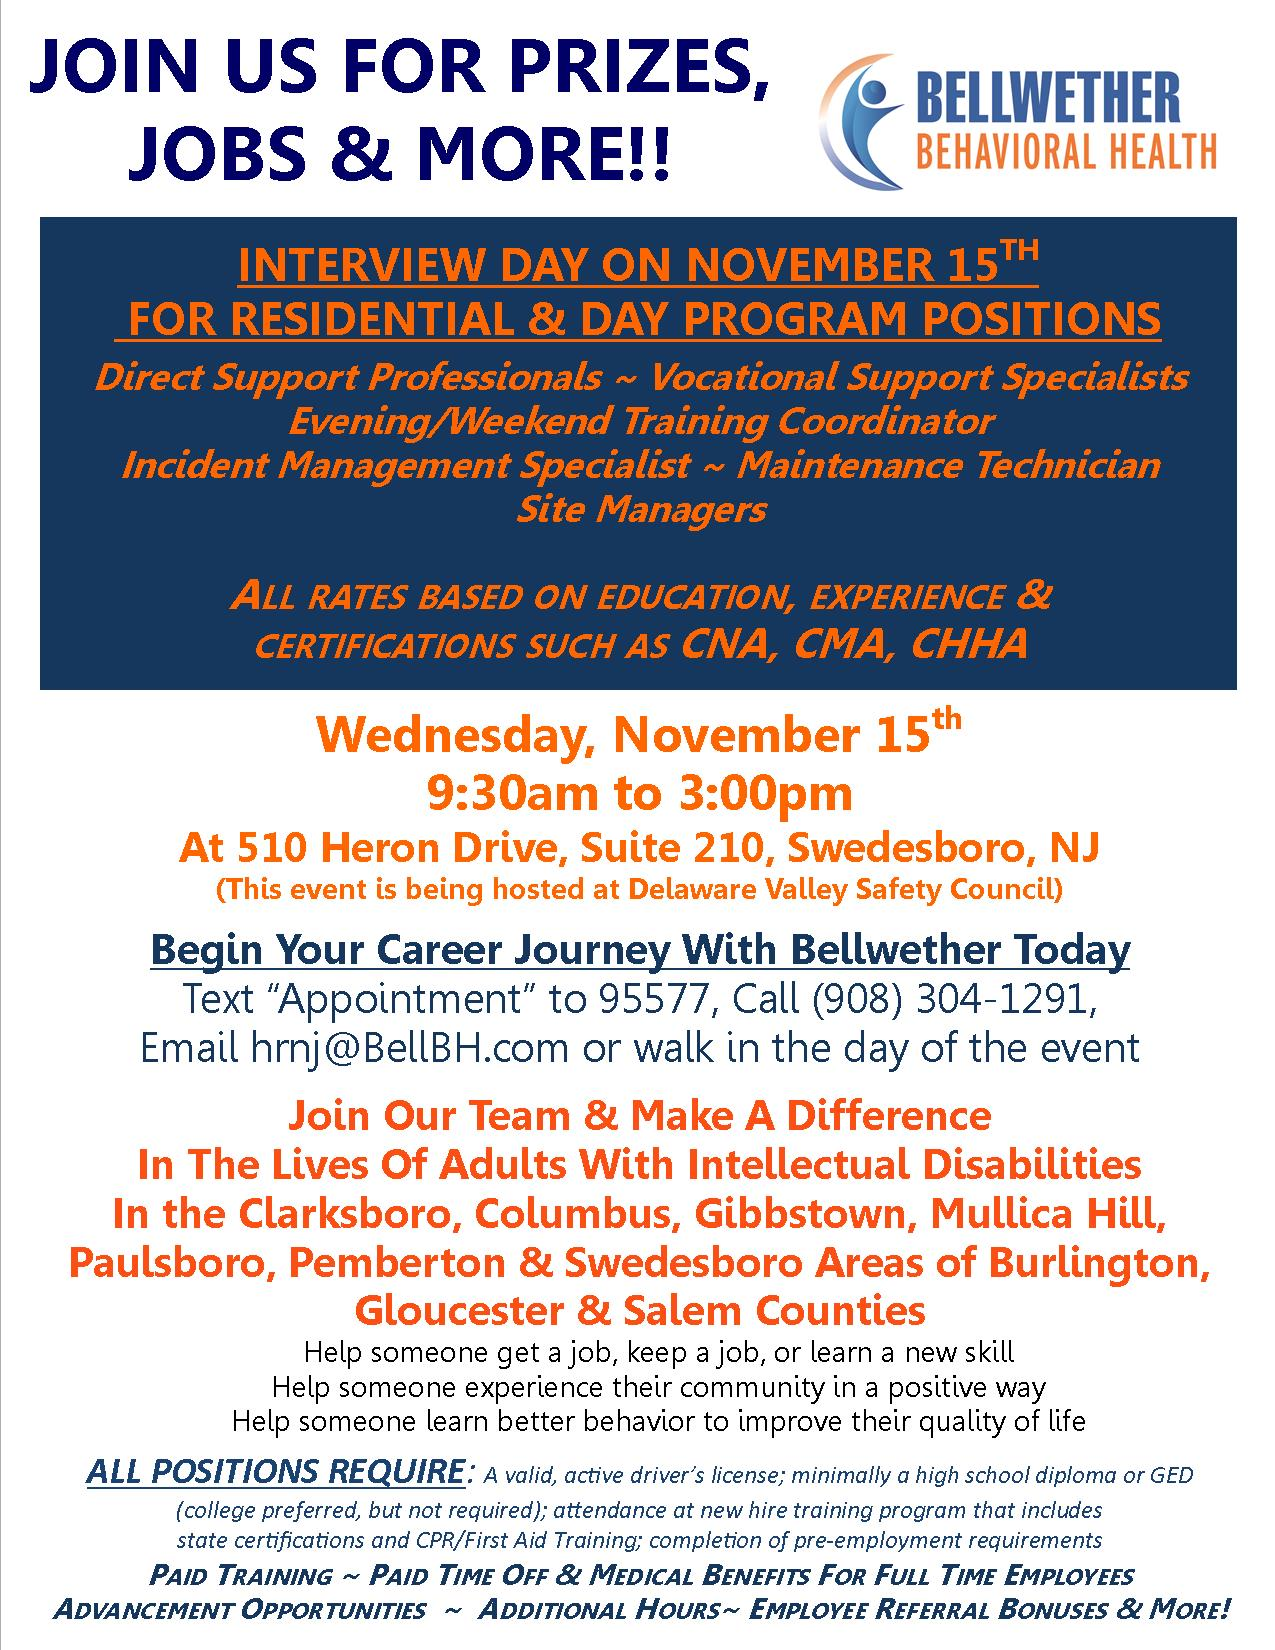 South Nov 15th Interview Day